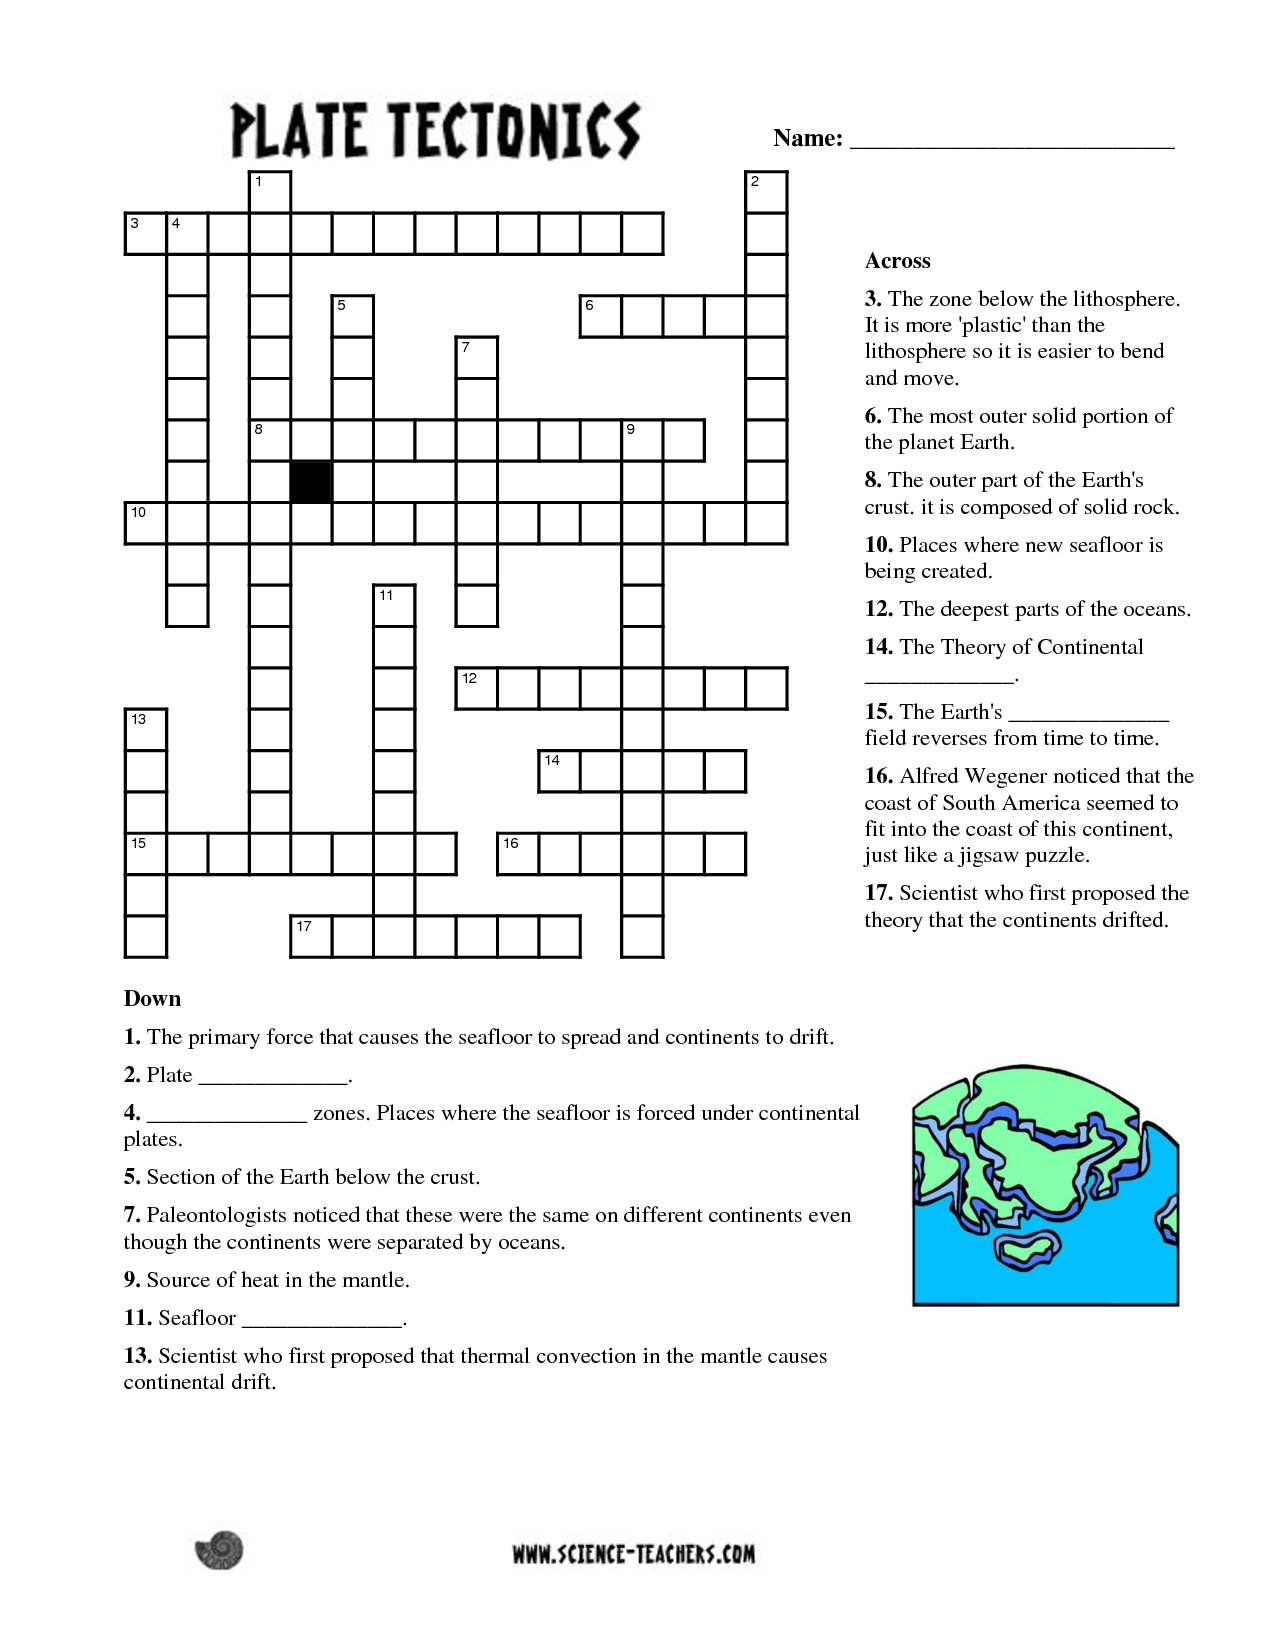 medium resolution of Planets Crossword Puzzle Worksheet   Printable crossword puzzles